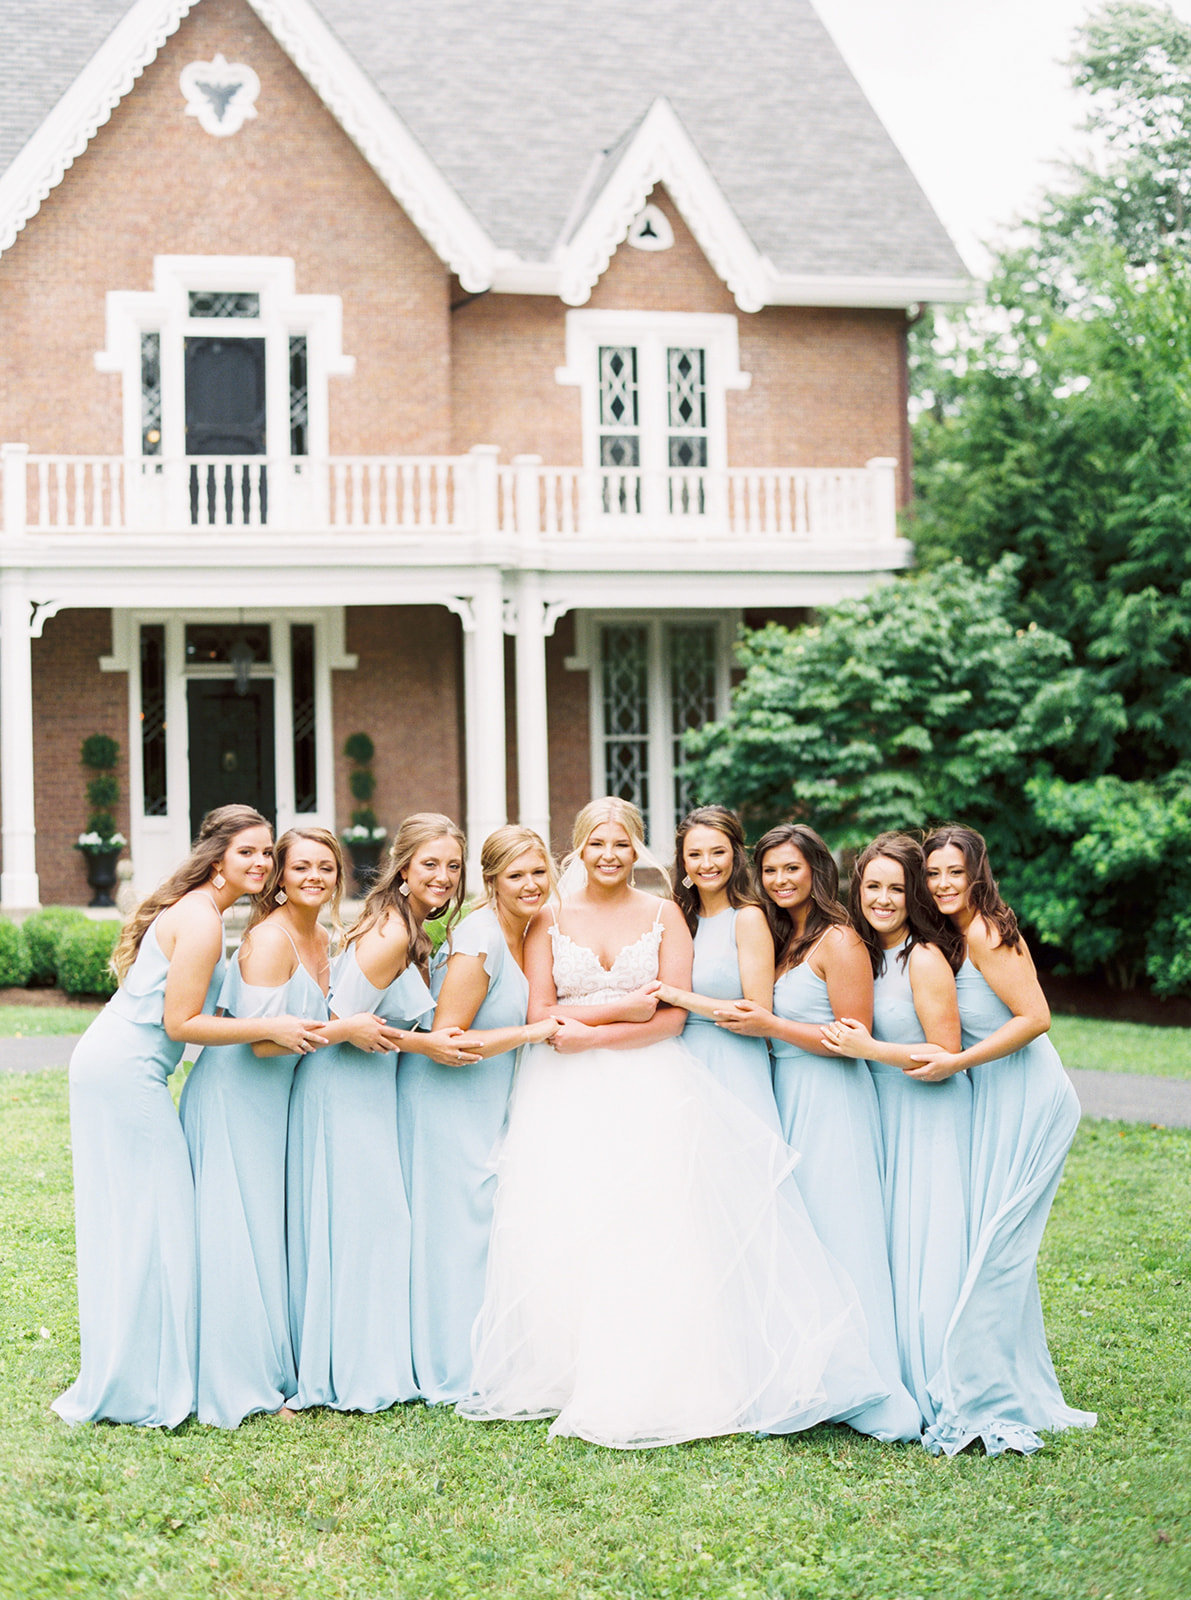 Warrenwood Manor - Kentucky Wedding Venue - Photo by Lyndsey Boyd00035